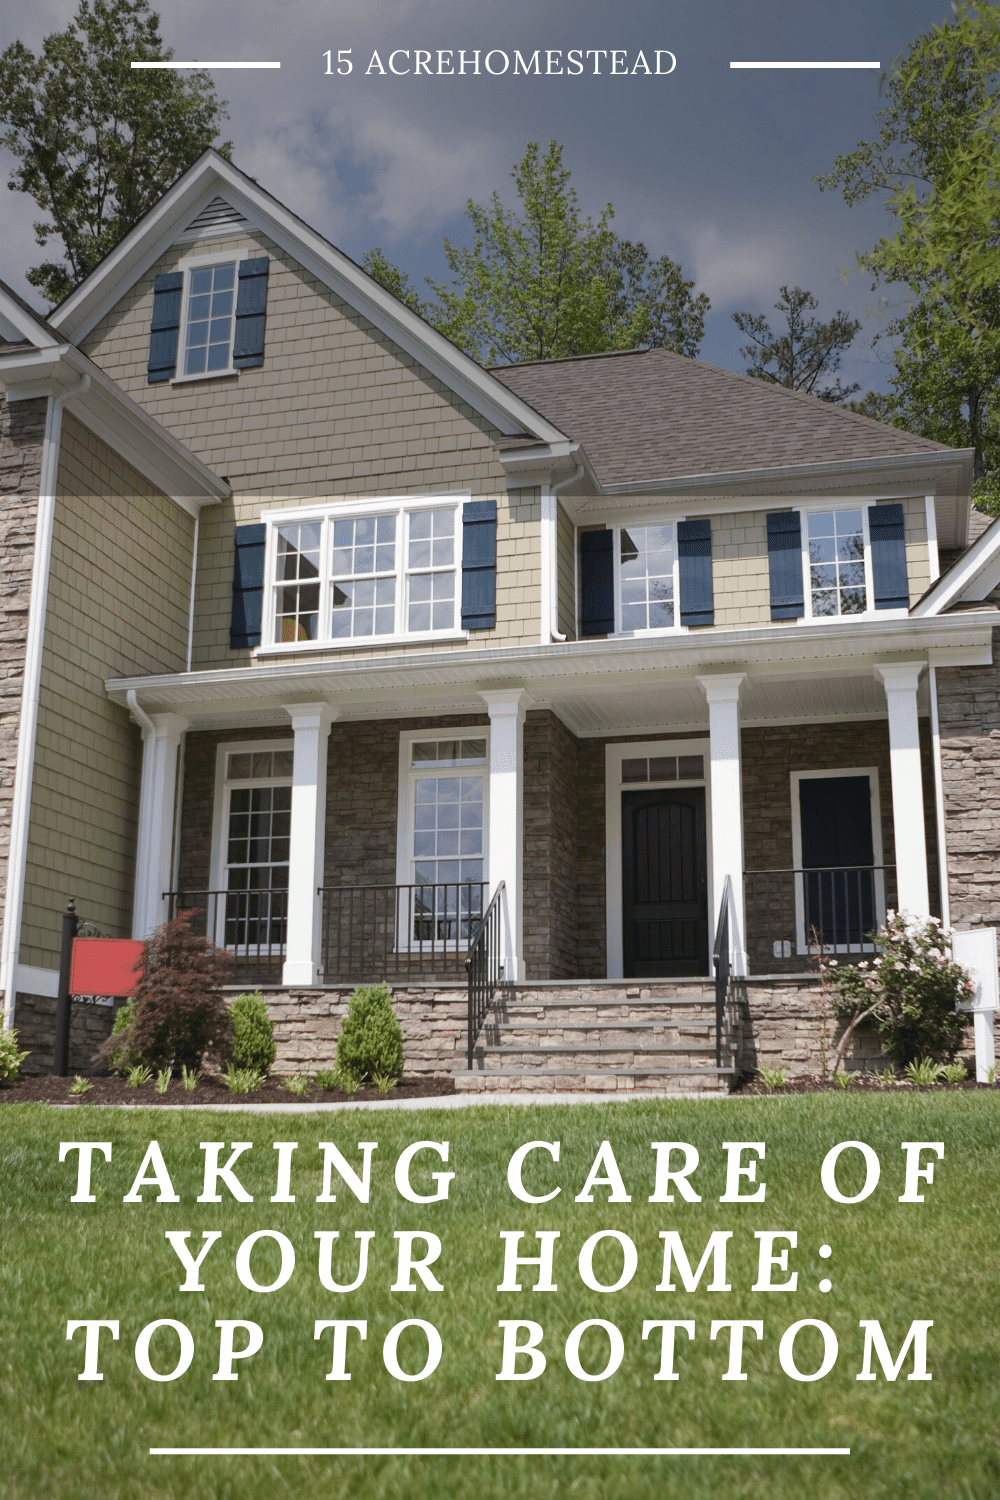 Use these quick tips to learn how to take care of your home from the foundation to the roof.